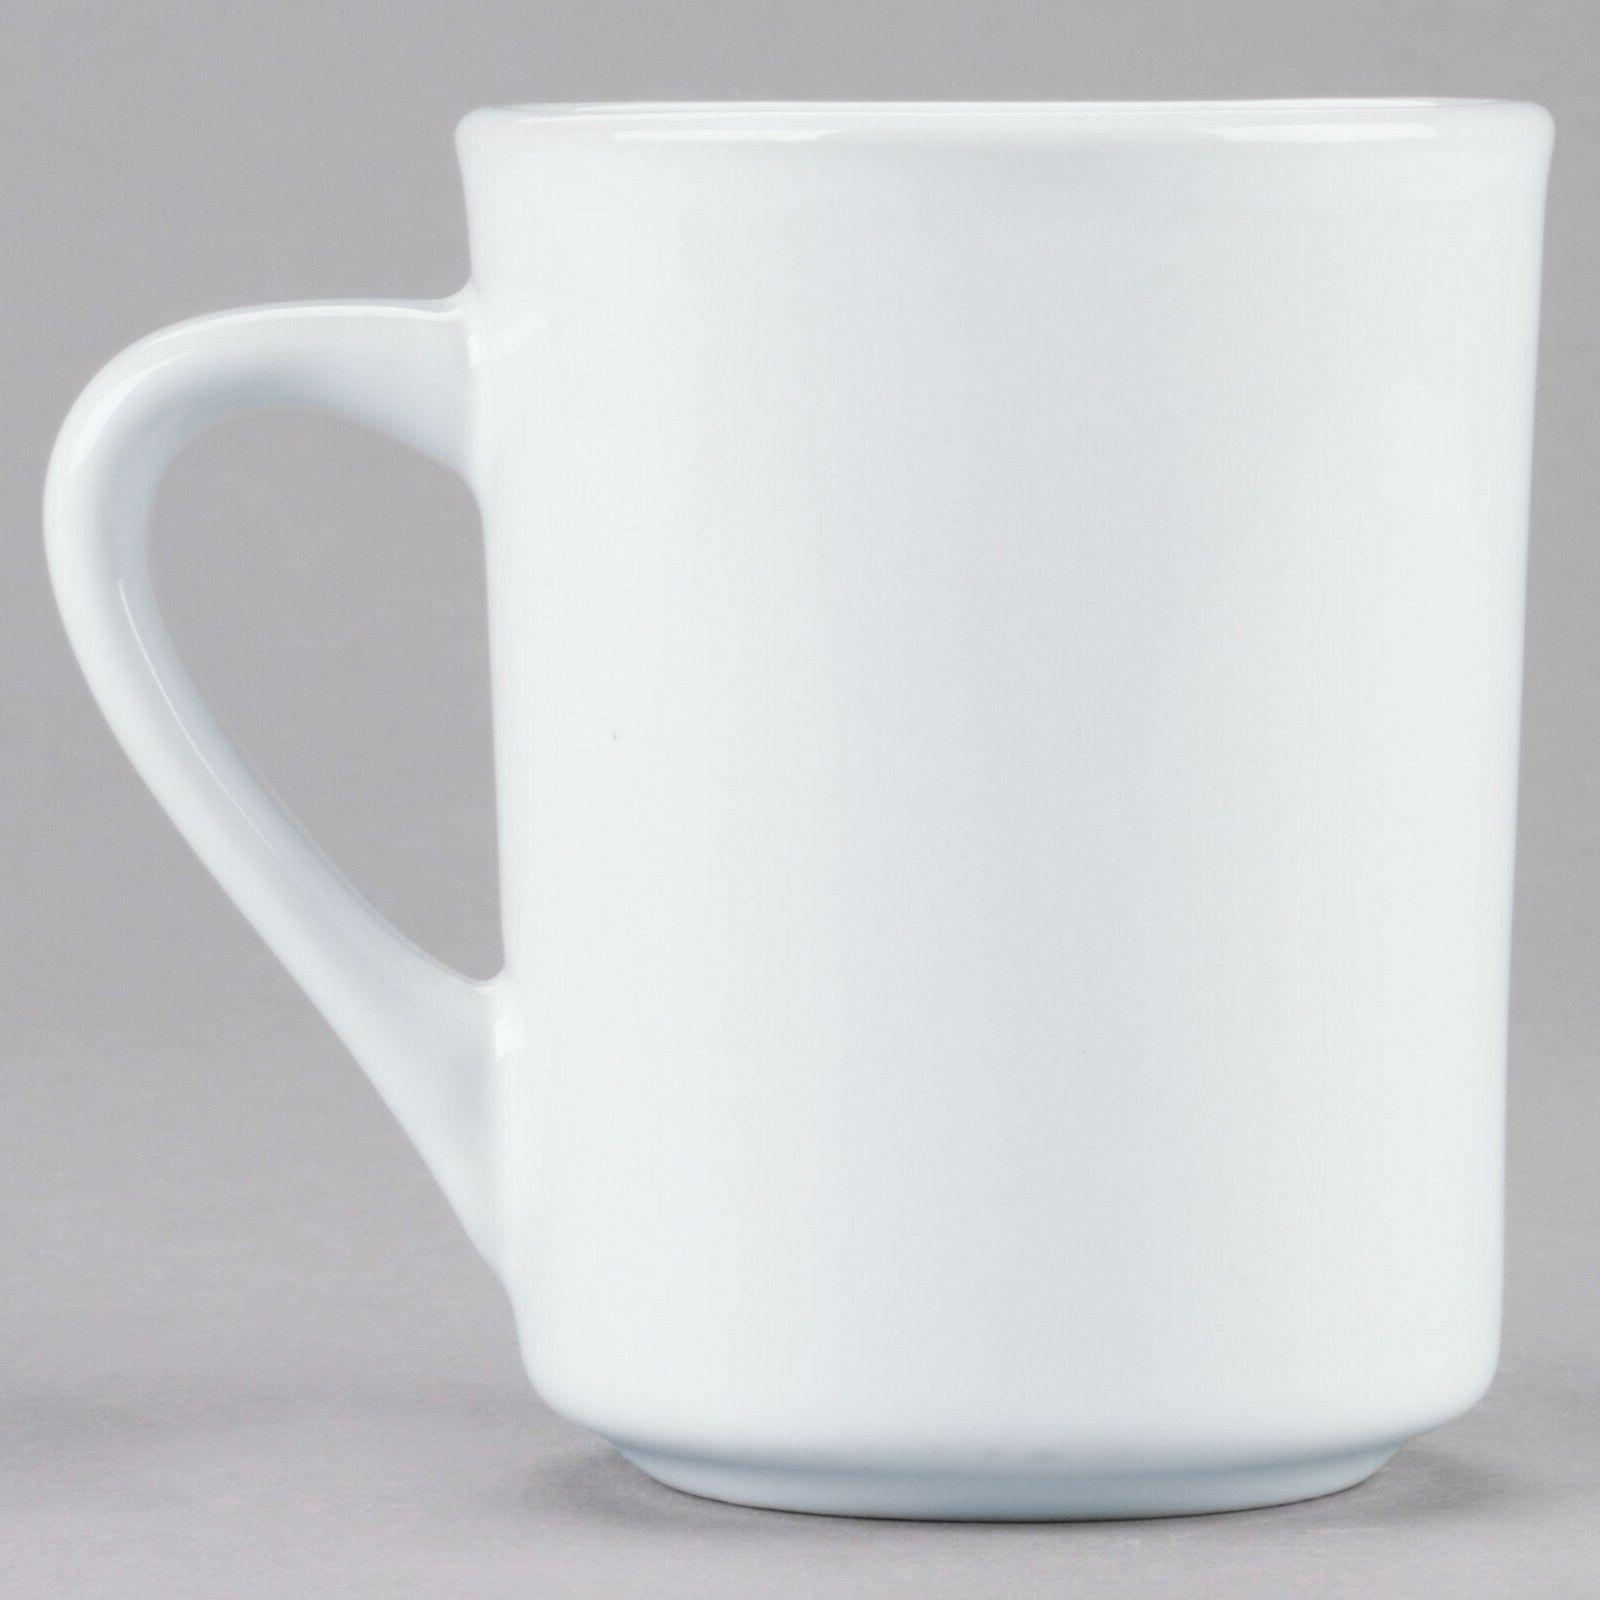 8 oz. Bright White Rolled Edge Porcelain China Coffee Mugs